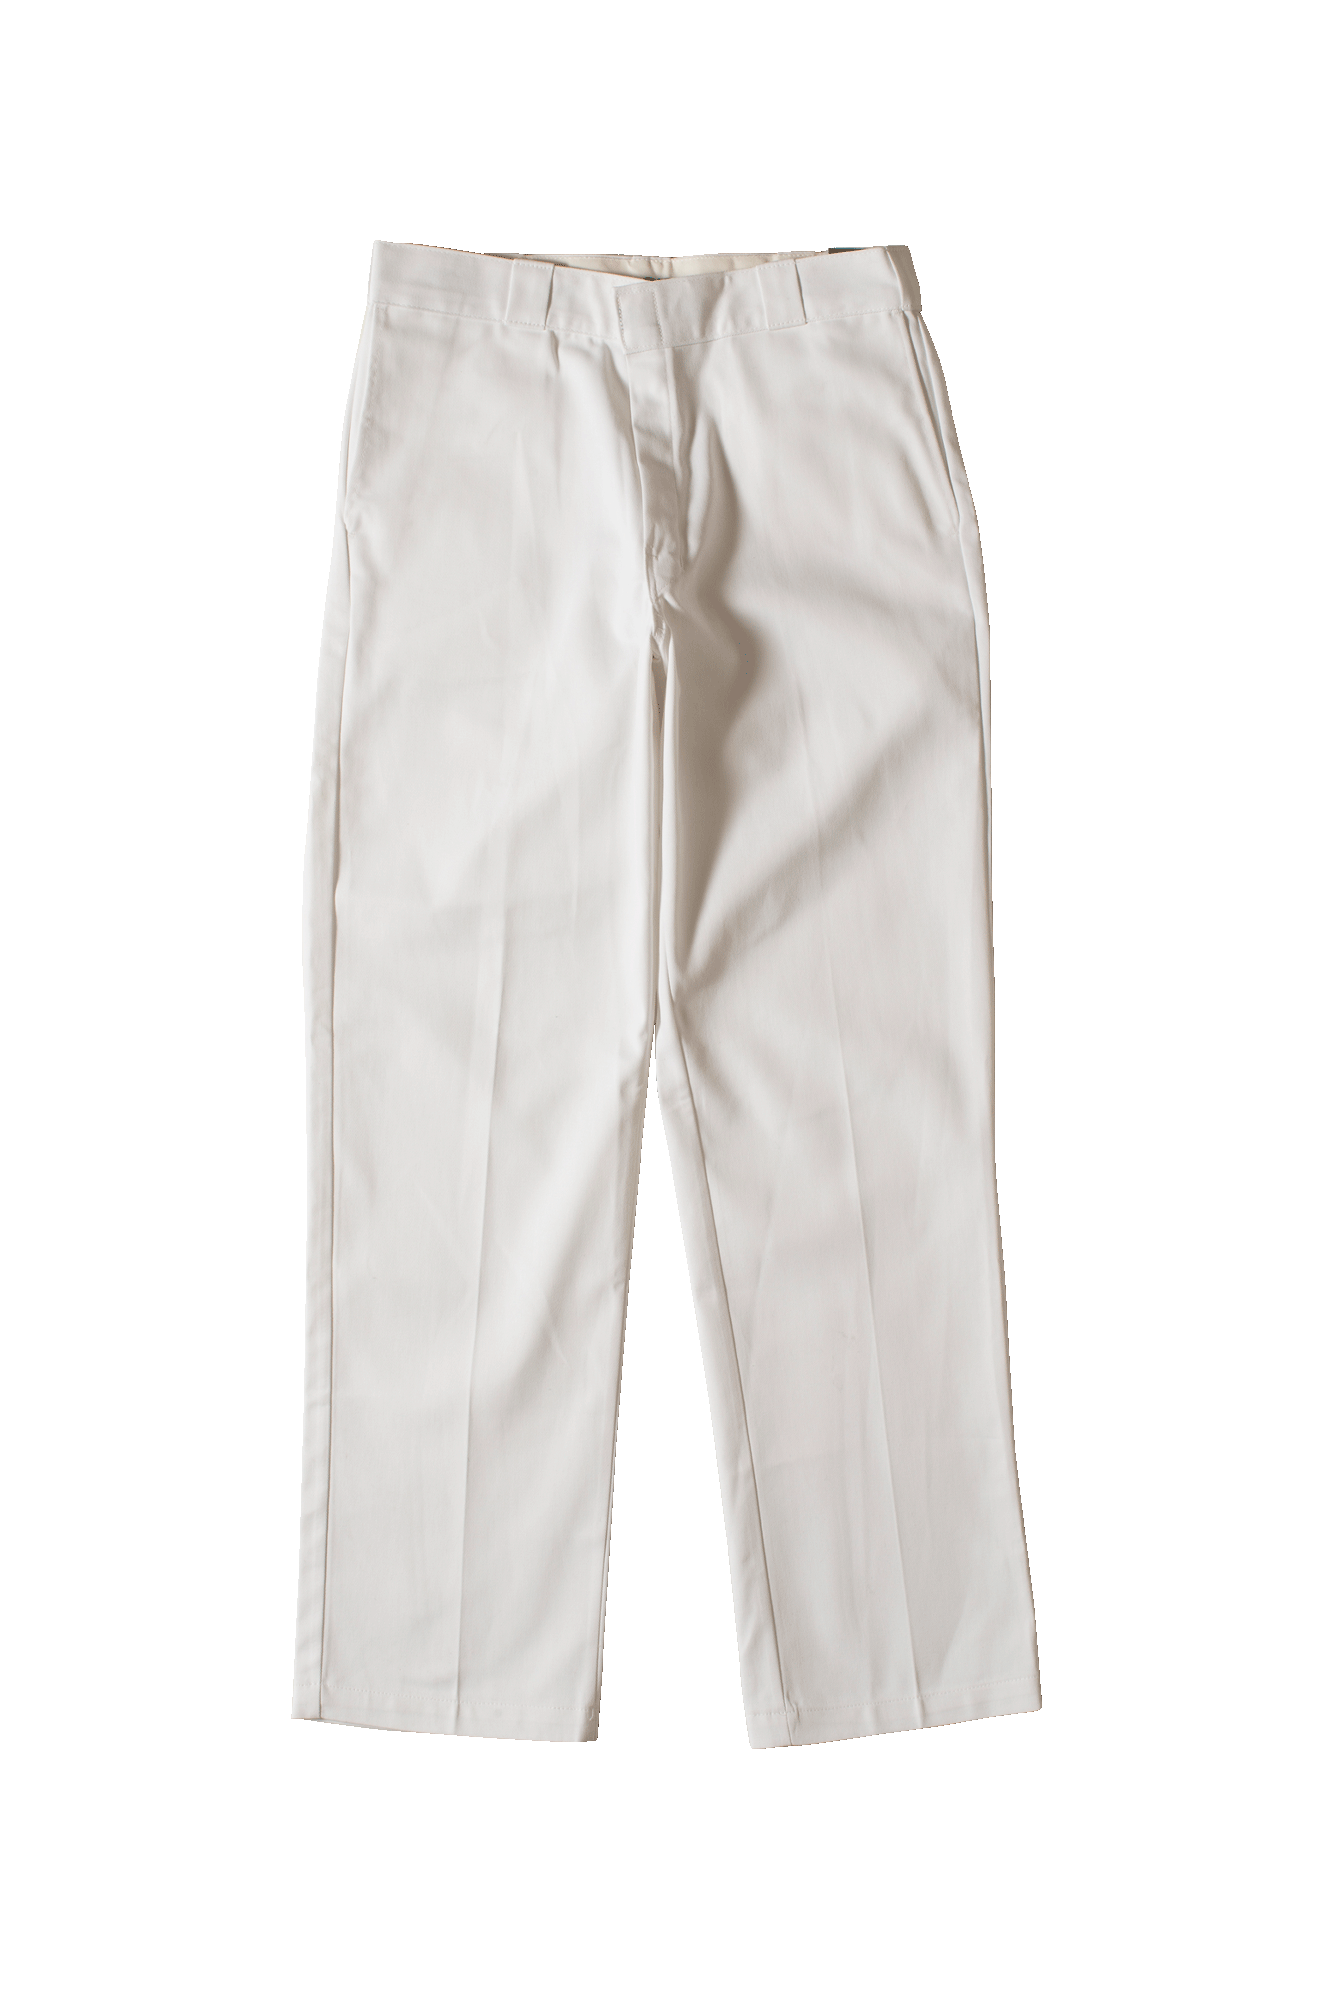 Dickies Trousers Original 874 Work Trousers White 684190013#000#WHT#29/34 - One Block Down